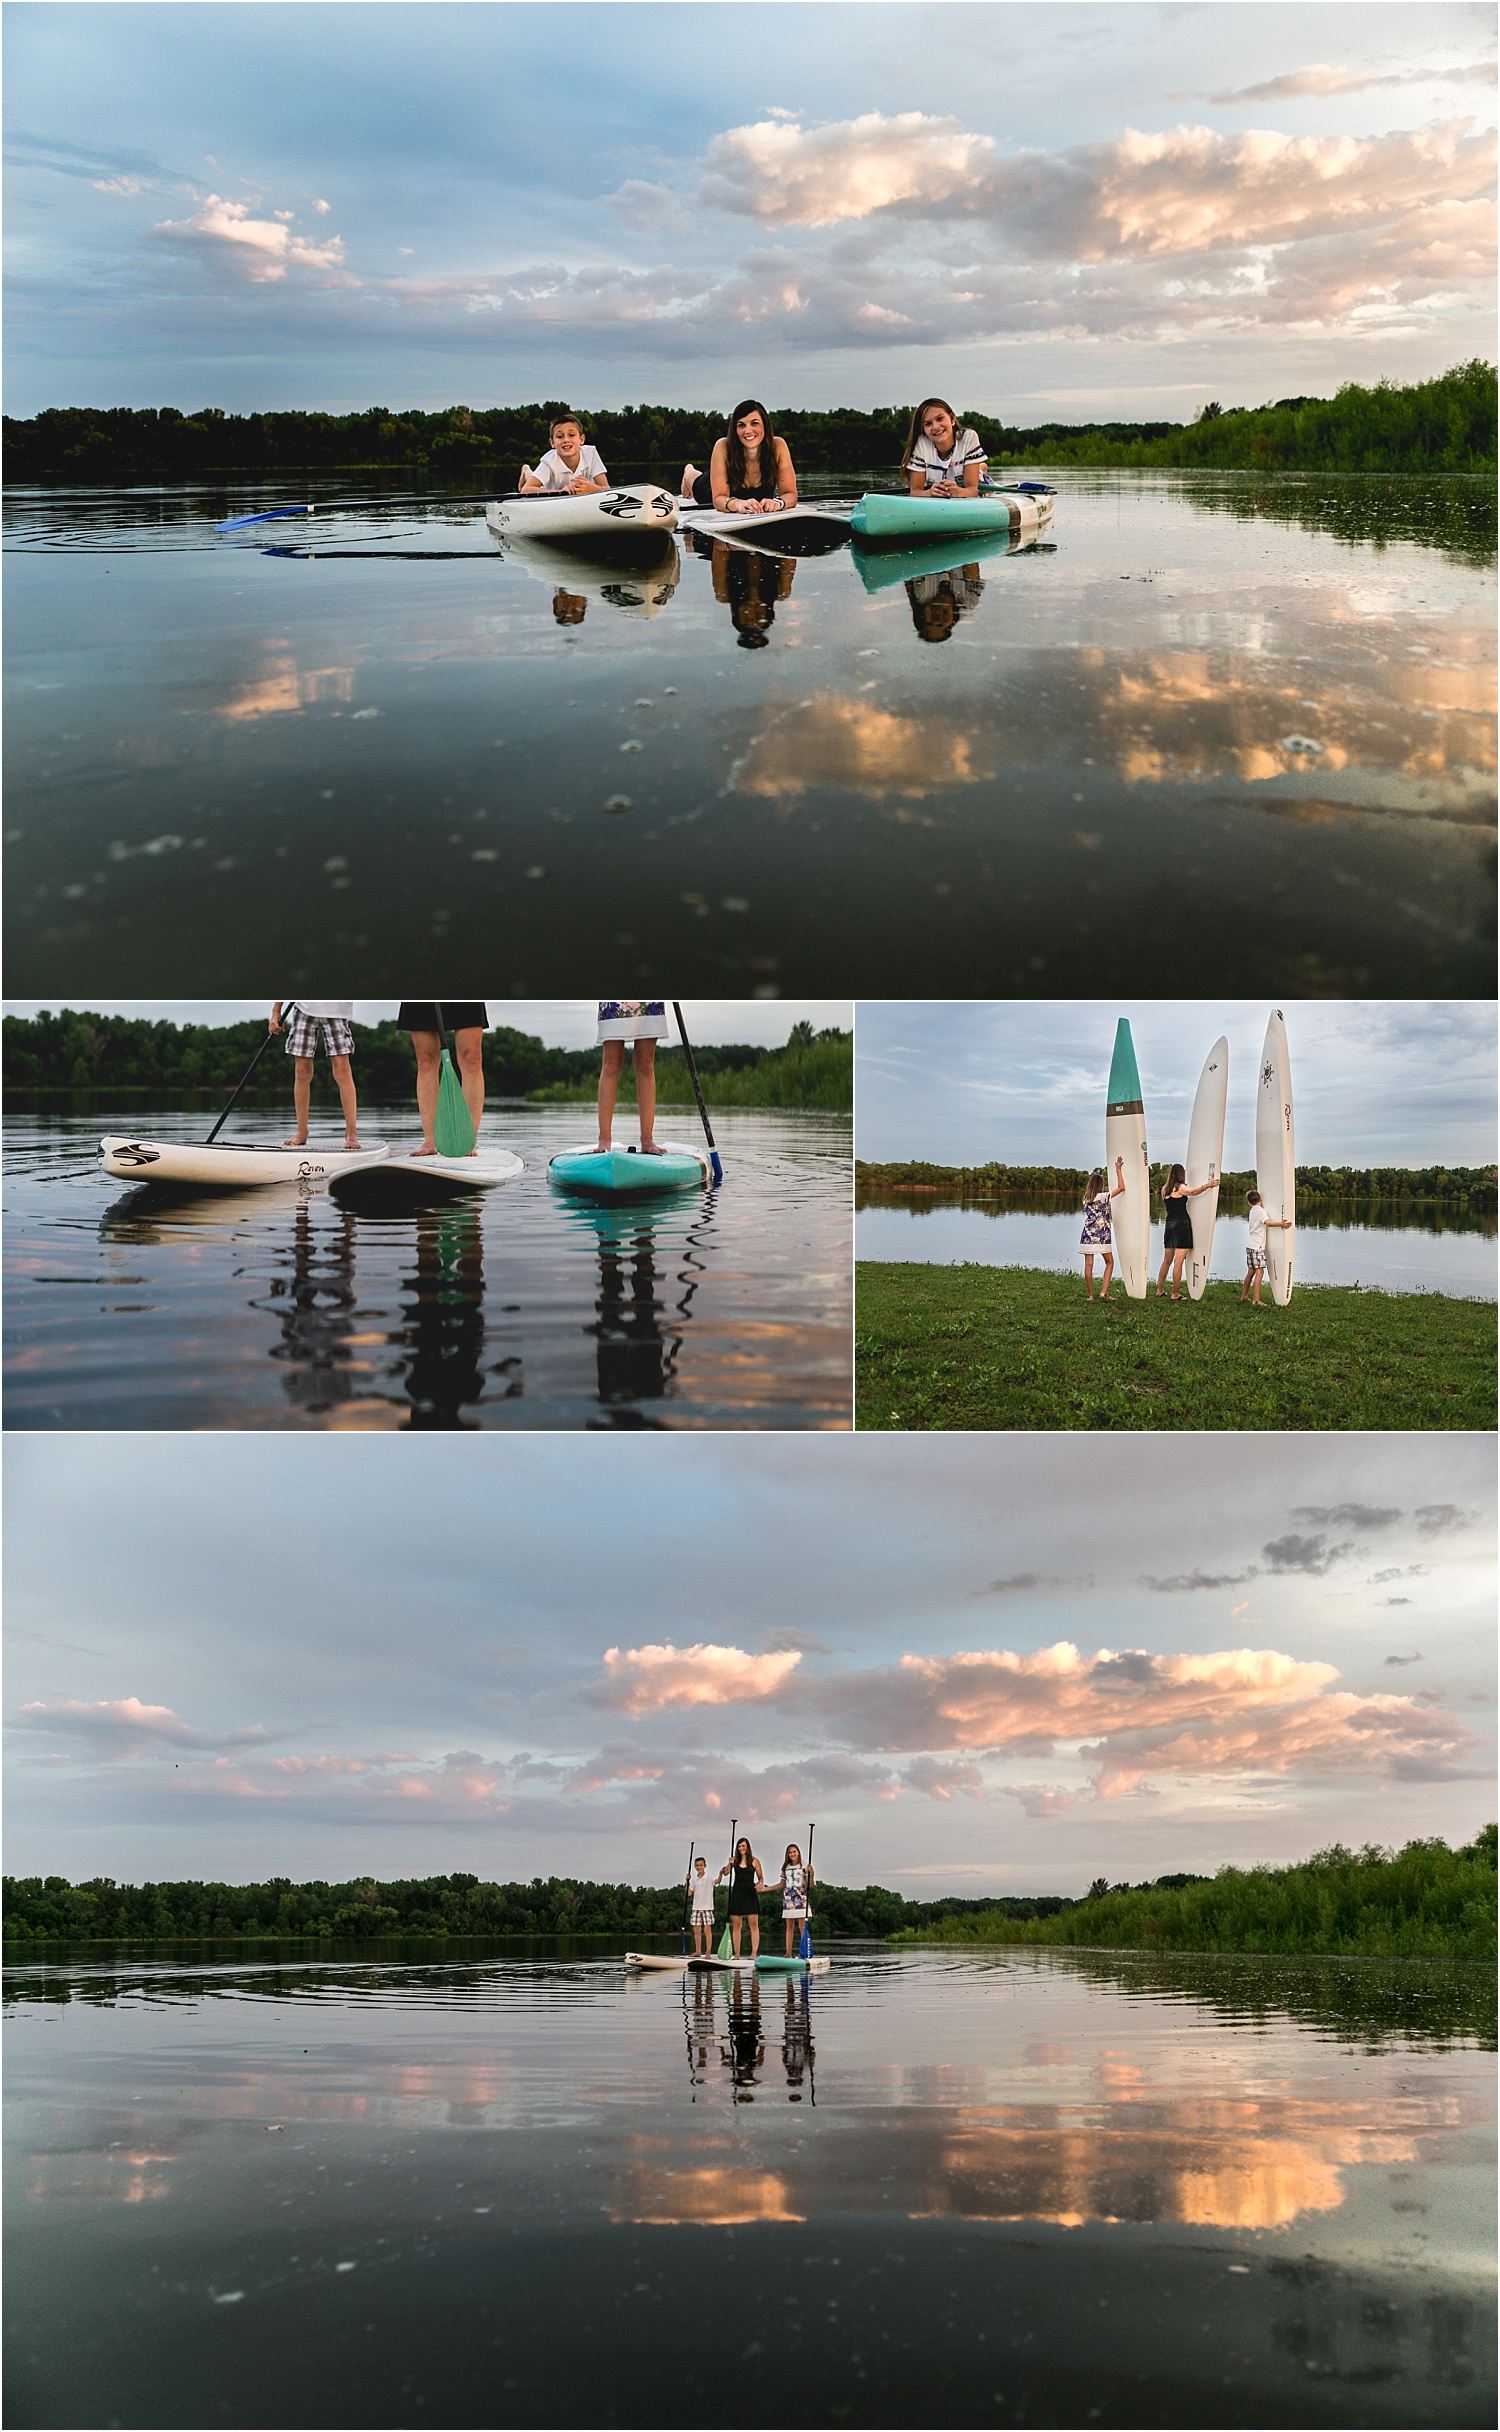 Family Lifestyle Photography with Stand Up Paddle Boards at sunset at Tuttle Creek Lake Manhattan KS